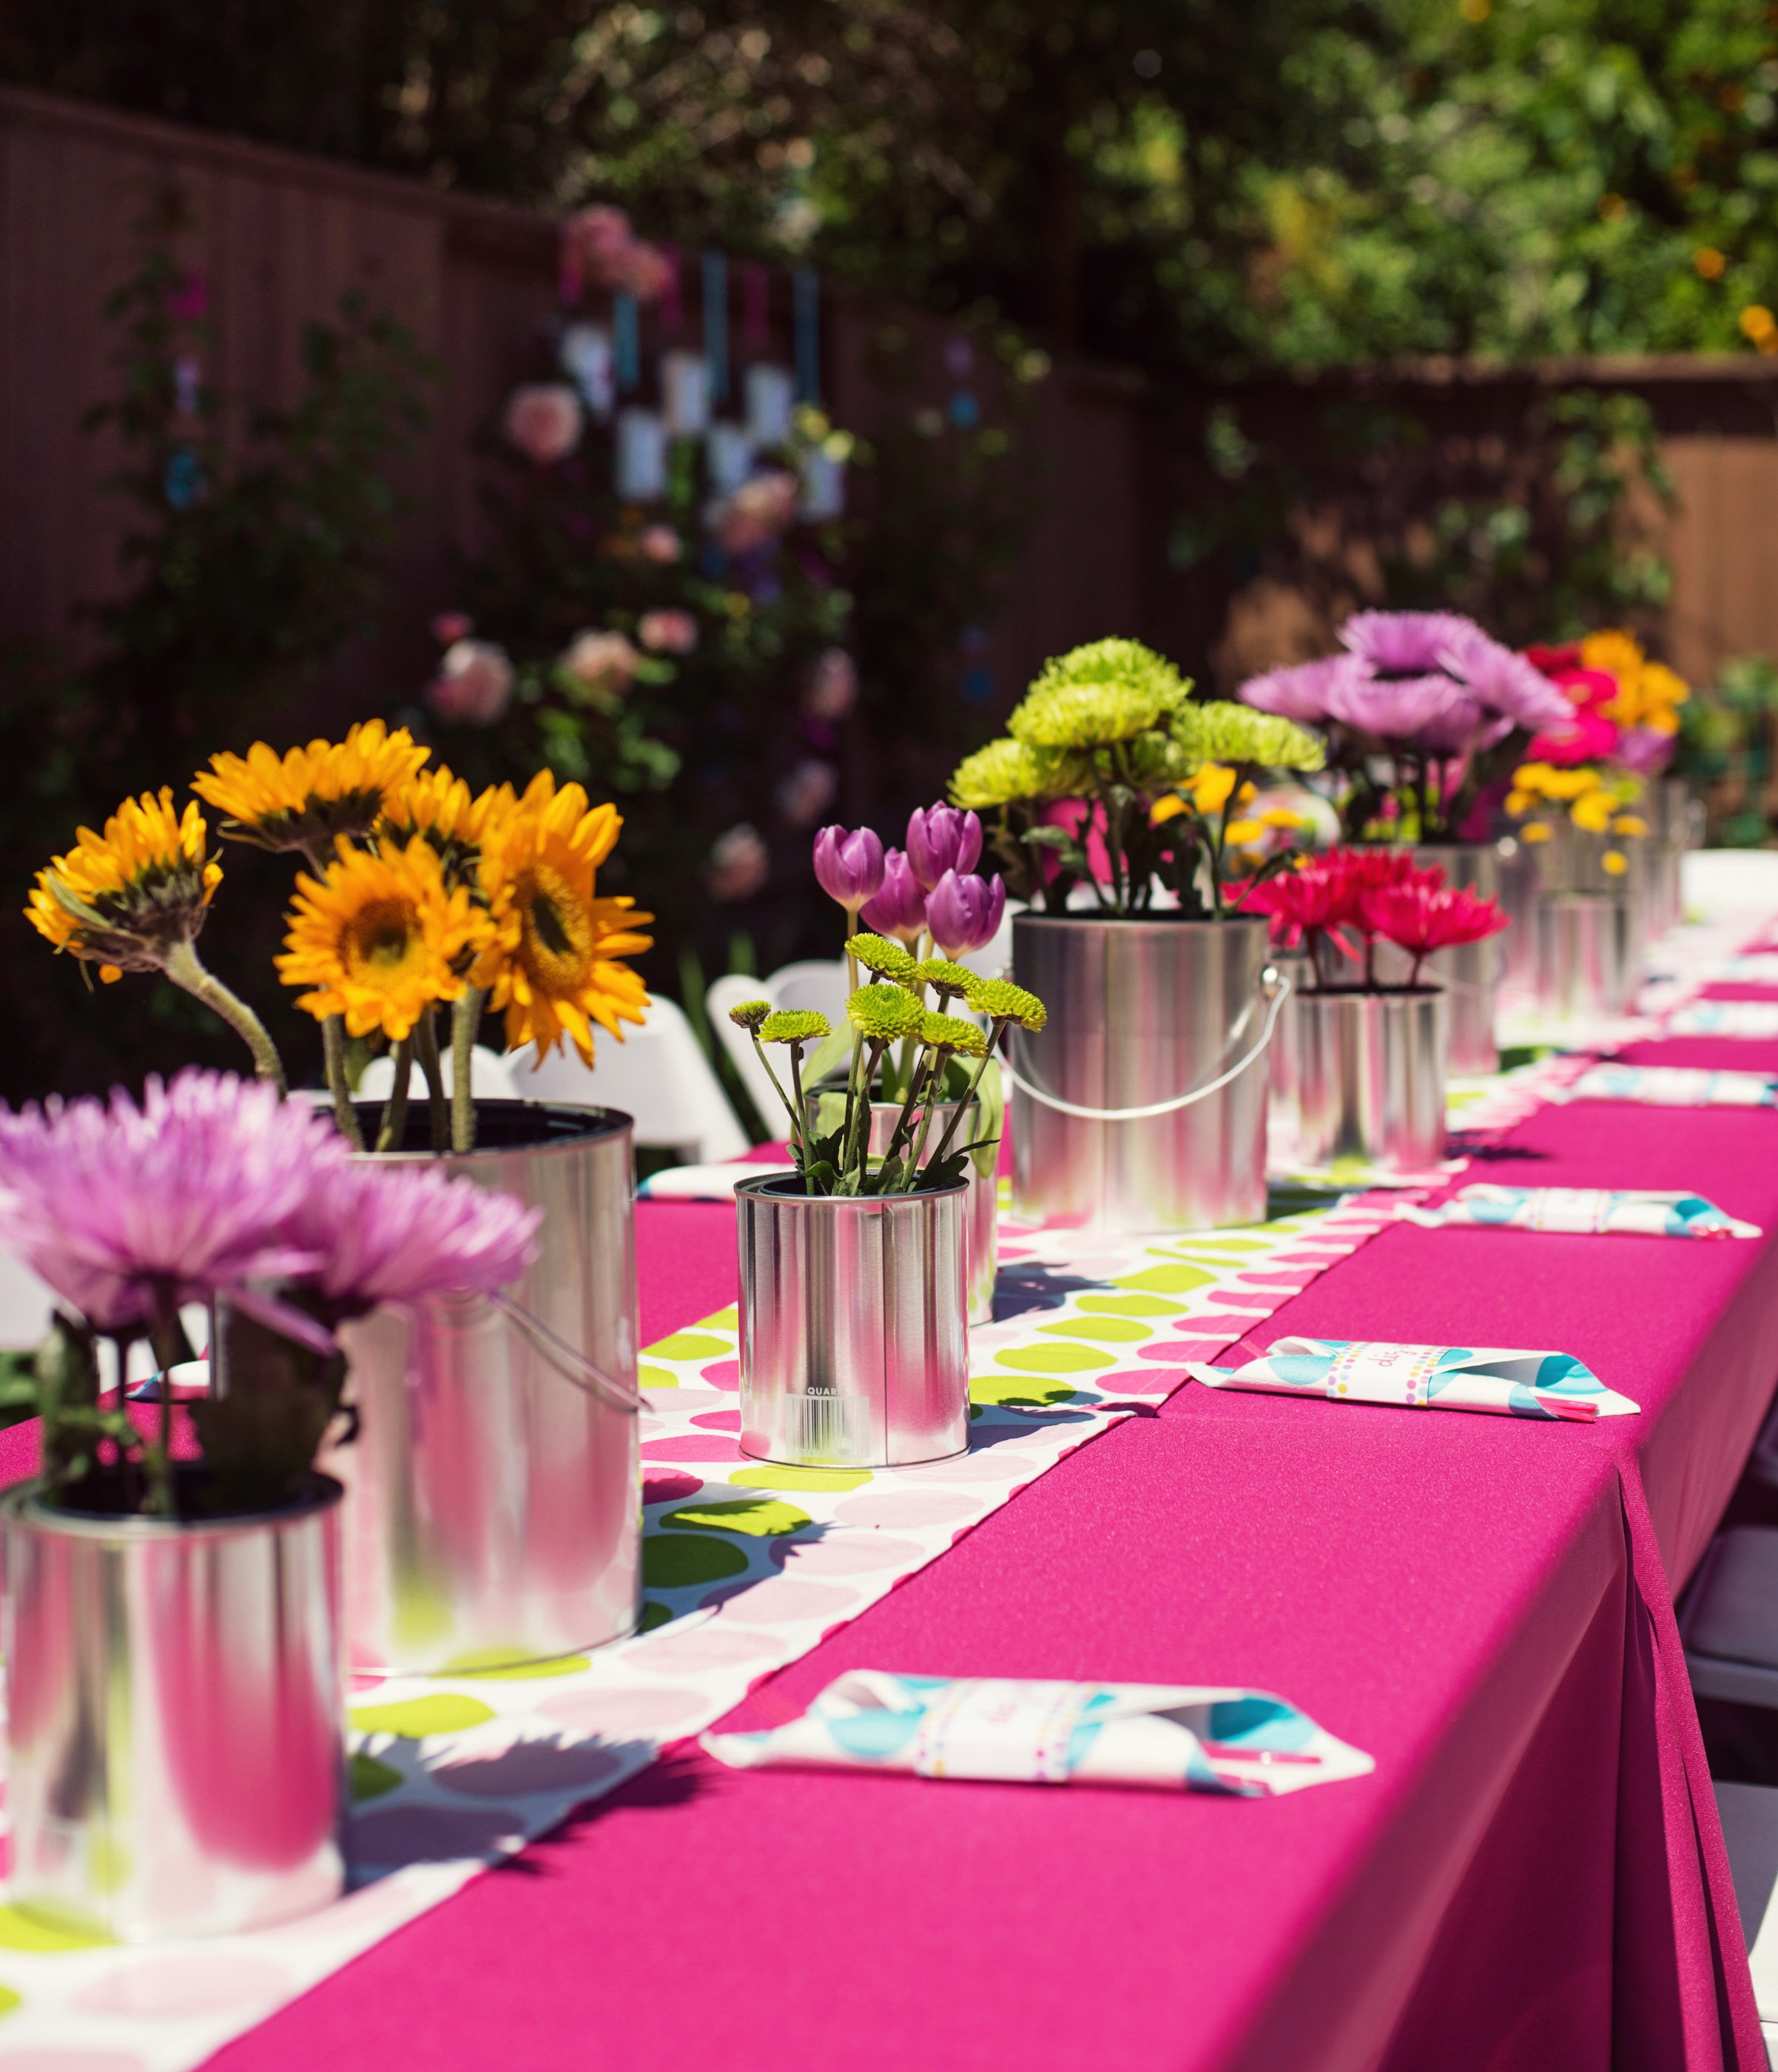 Paint can centerpieces with pretty flowers